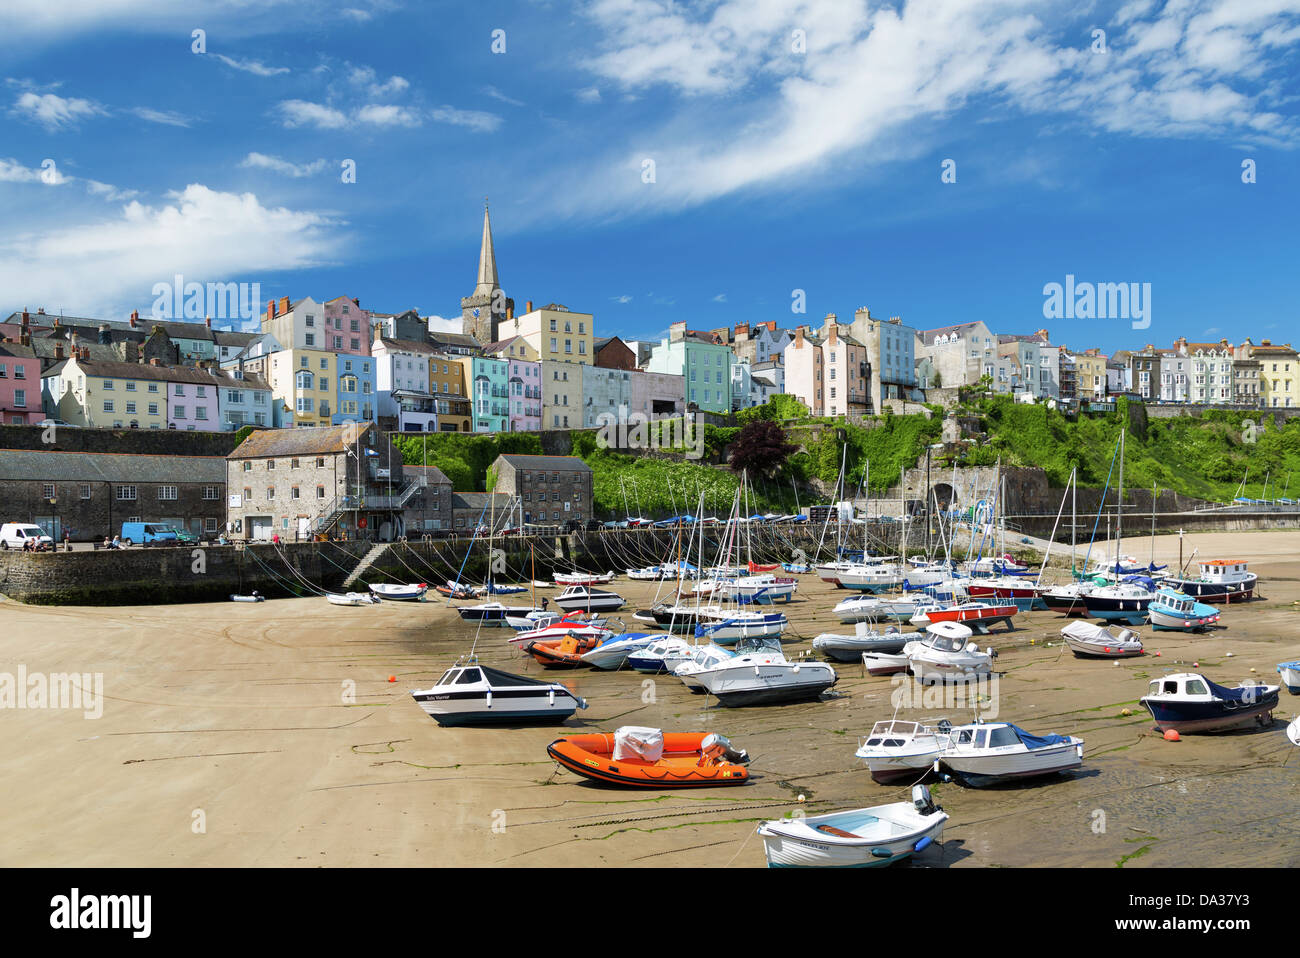 Painted houses around the harbour,Tenby, Pembrokeshire, Wales - Stock Image